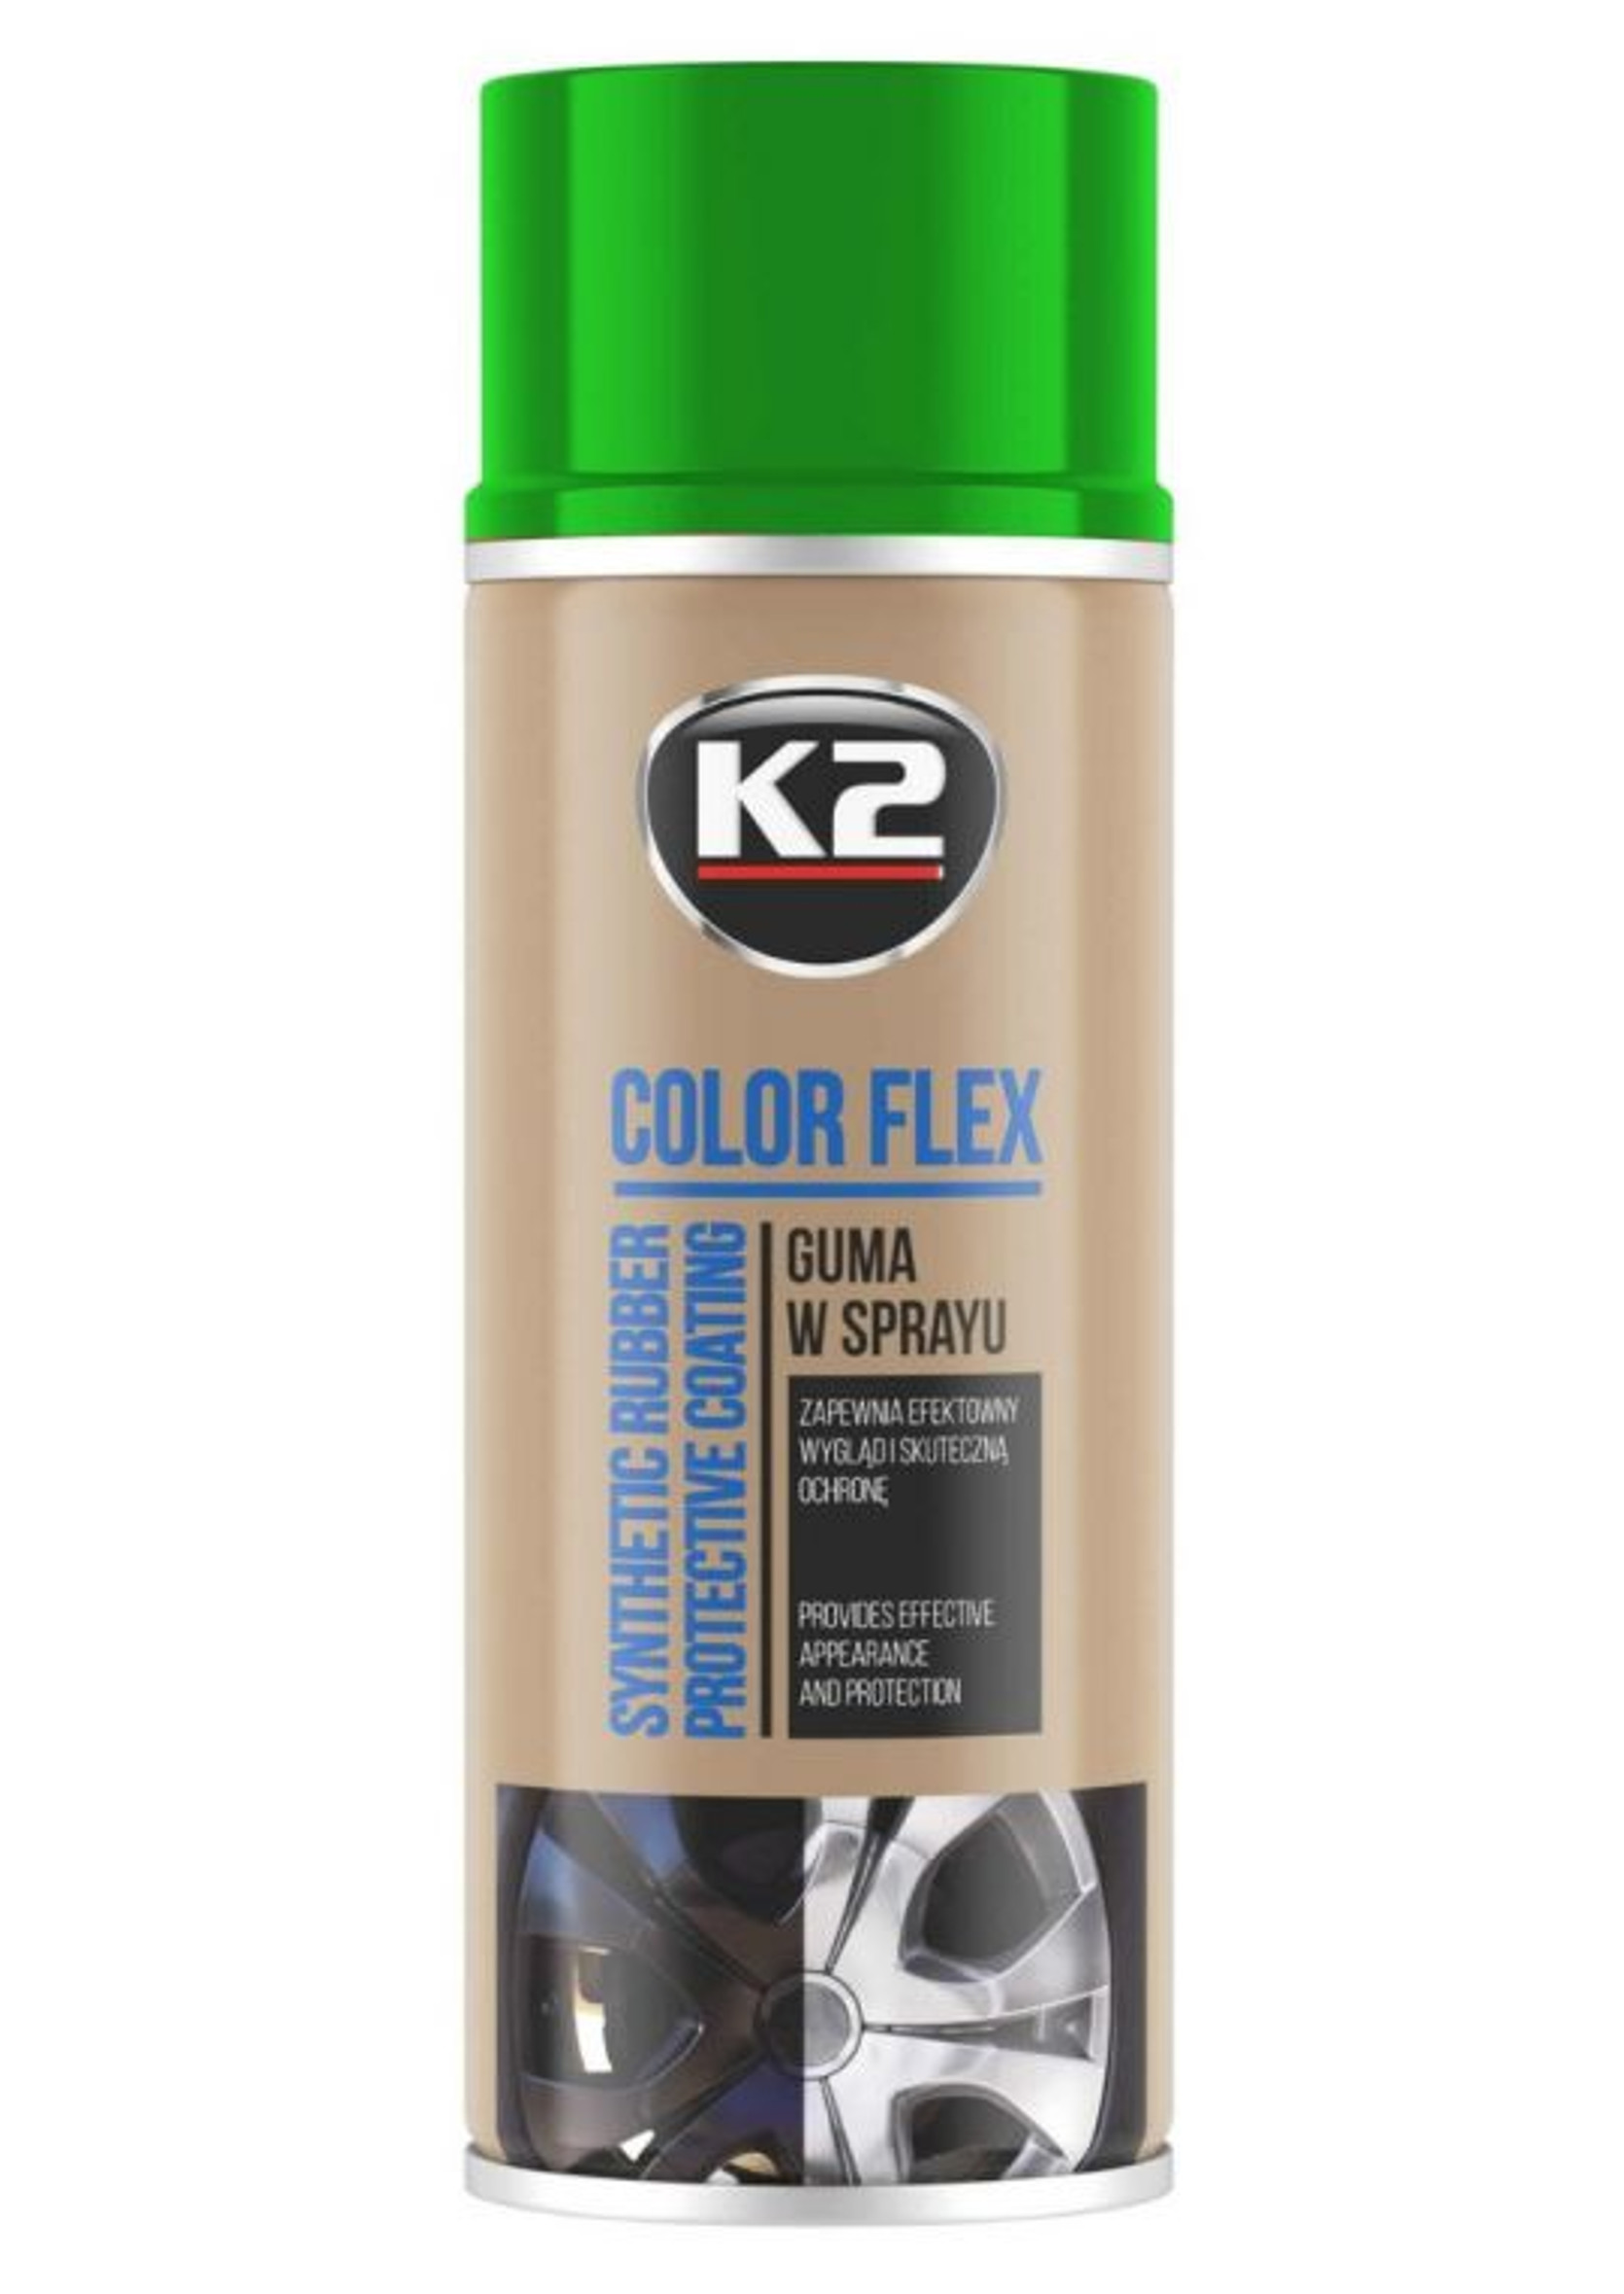 K2 Color Flex Zielony 400ml Guma w Sprayu